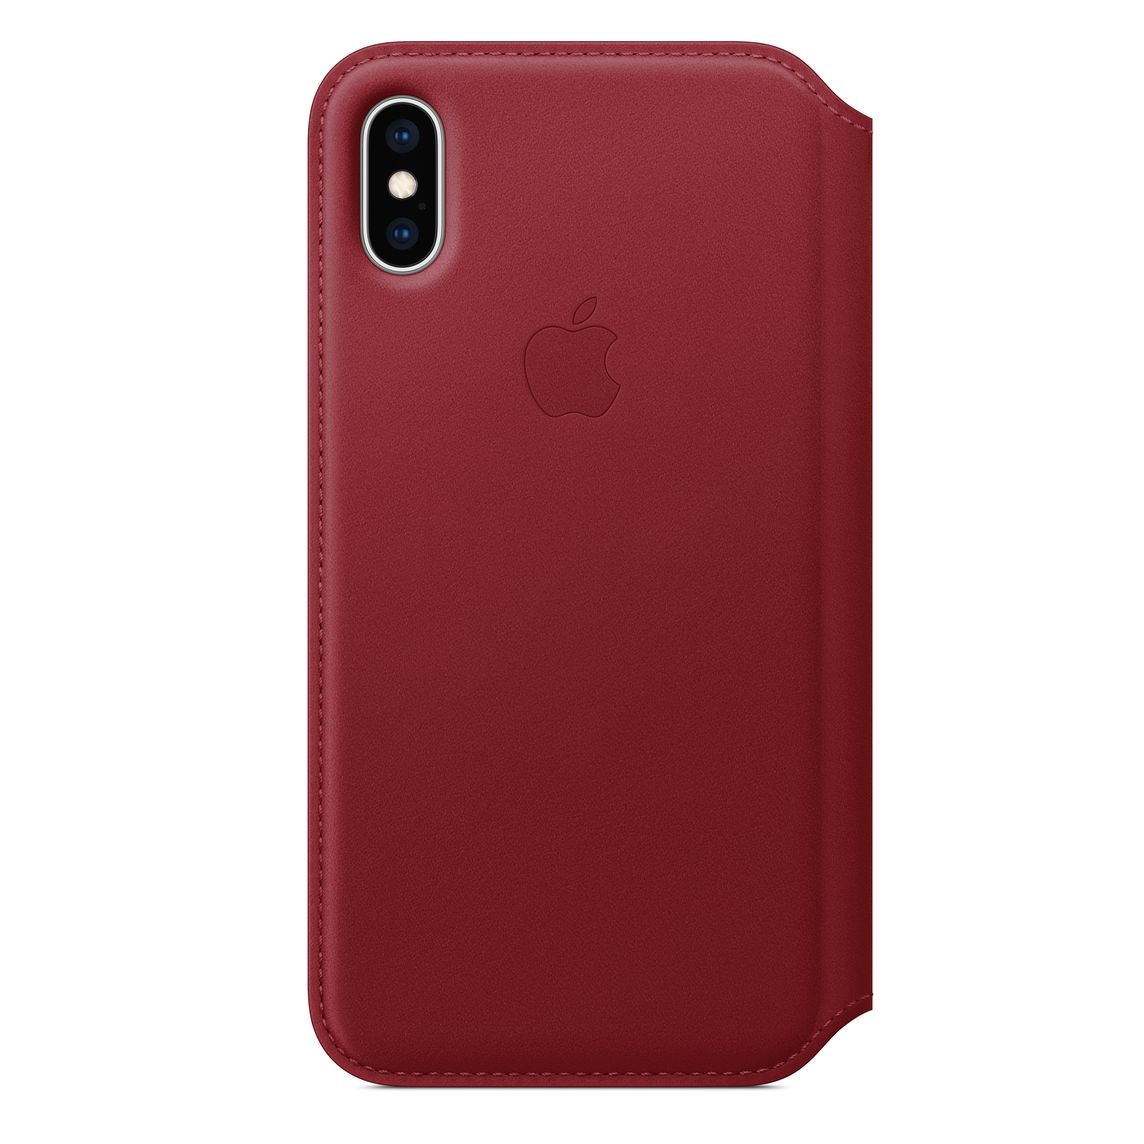 new concept e325e 641e3 iPhone XS Leather Folio — (PRODUCT)RED